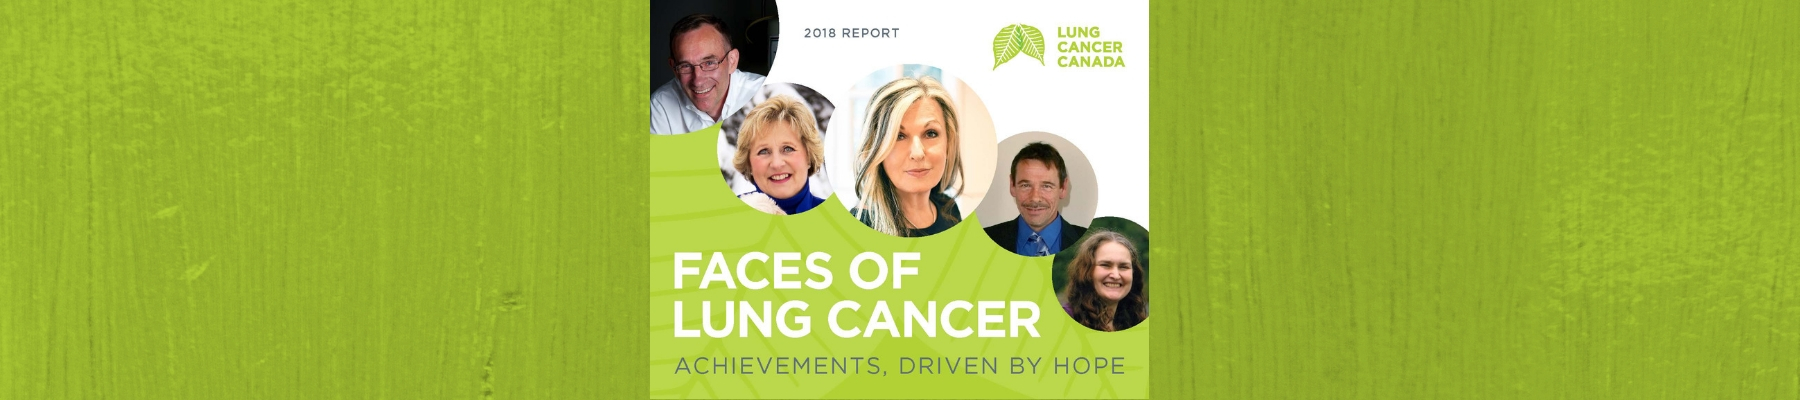 2018 Faces of Lung Cancer Report